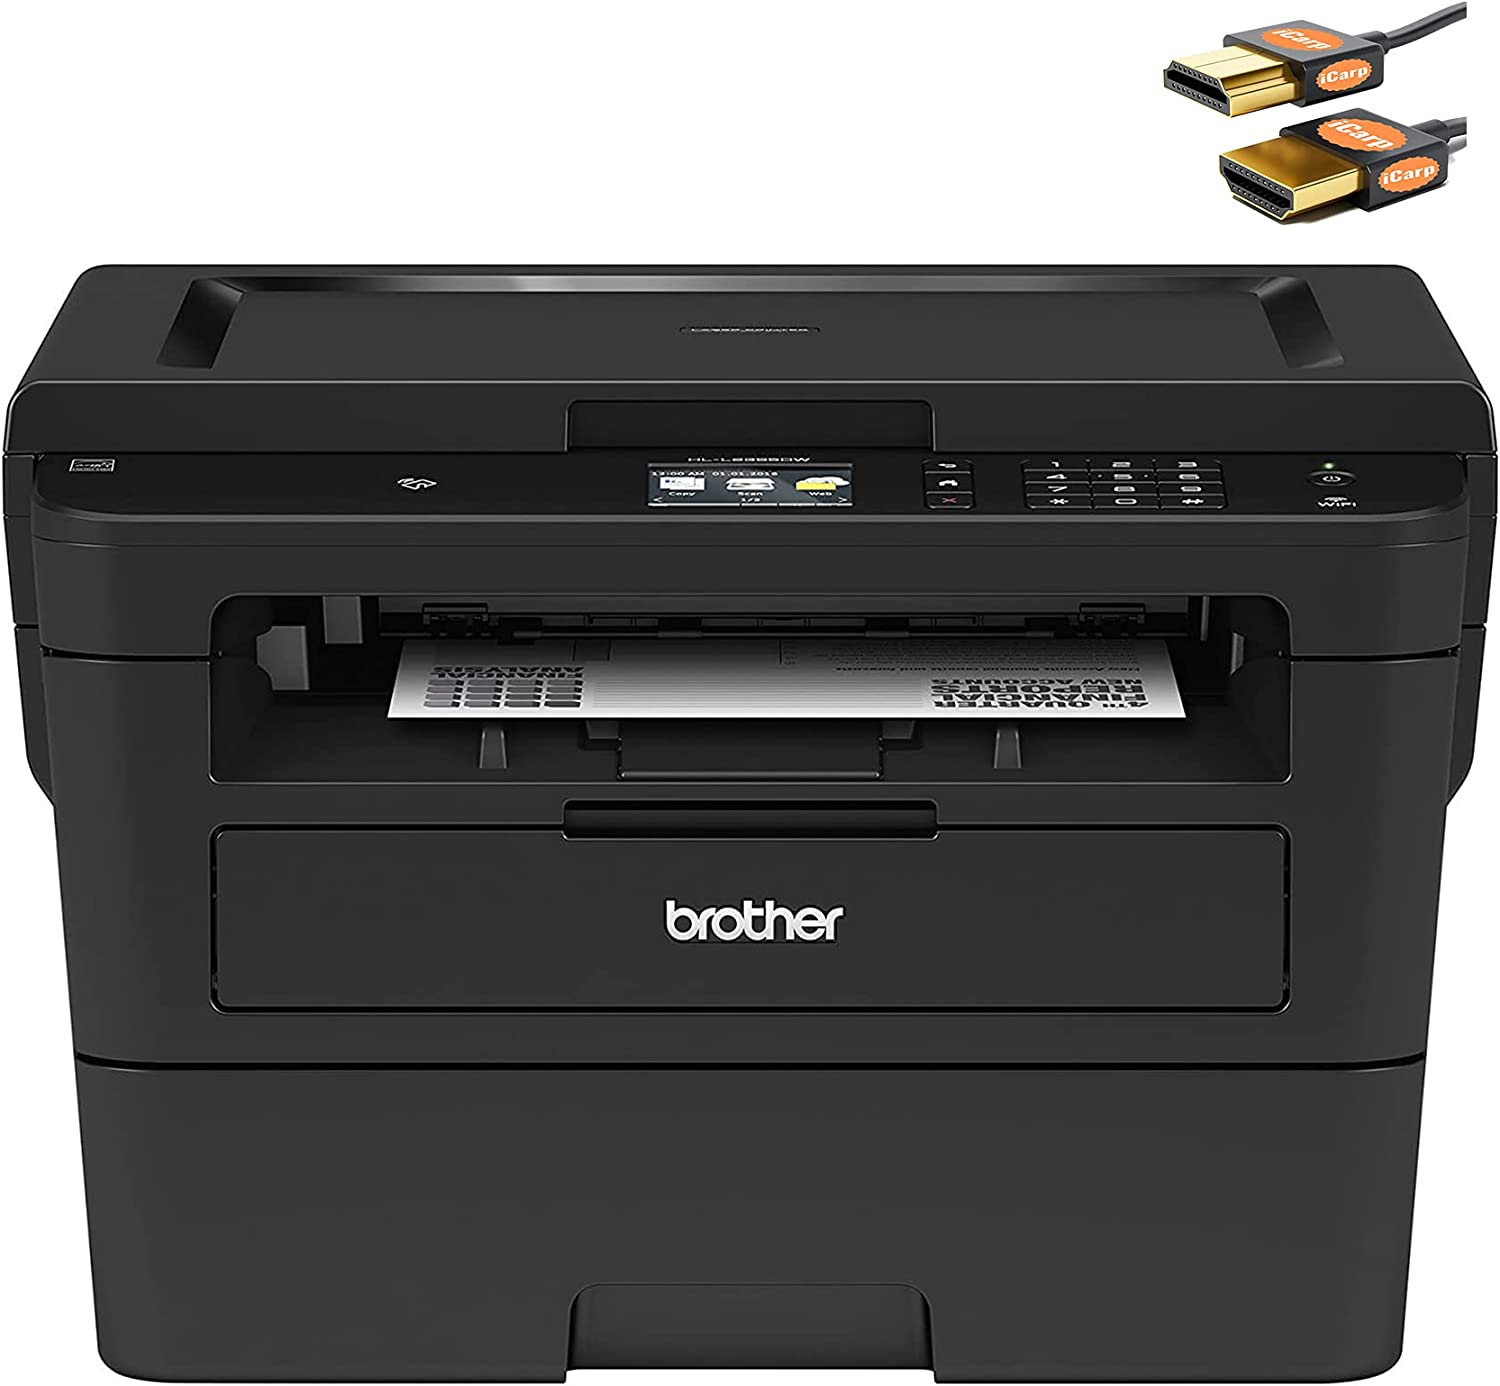 Brother HL-L Series Compact Wireless Monochrome Laser All-in-One Printer - Print Scan Copy - Auto Duplex Printing - Mobile Printing - 2.7